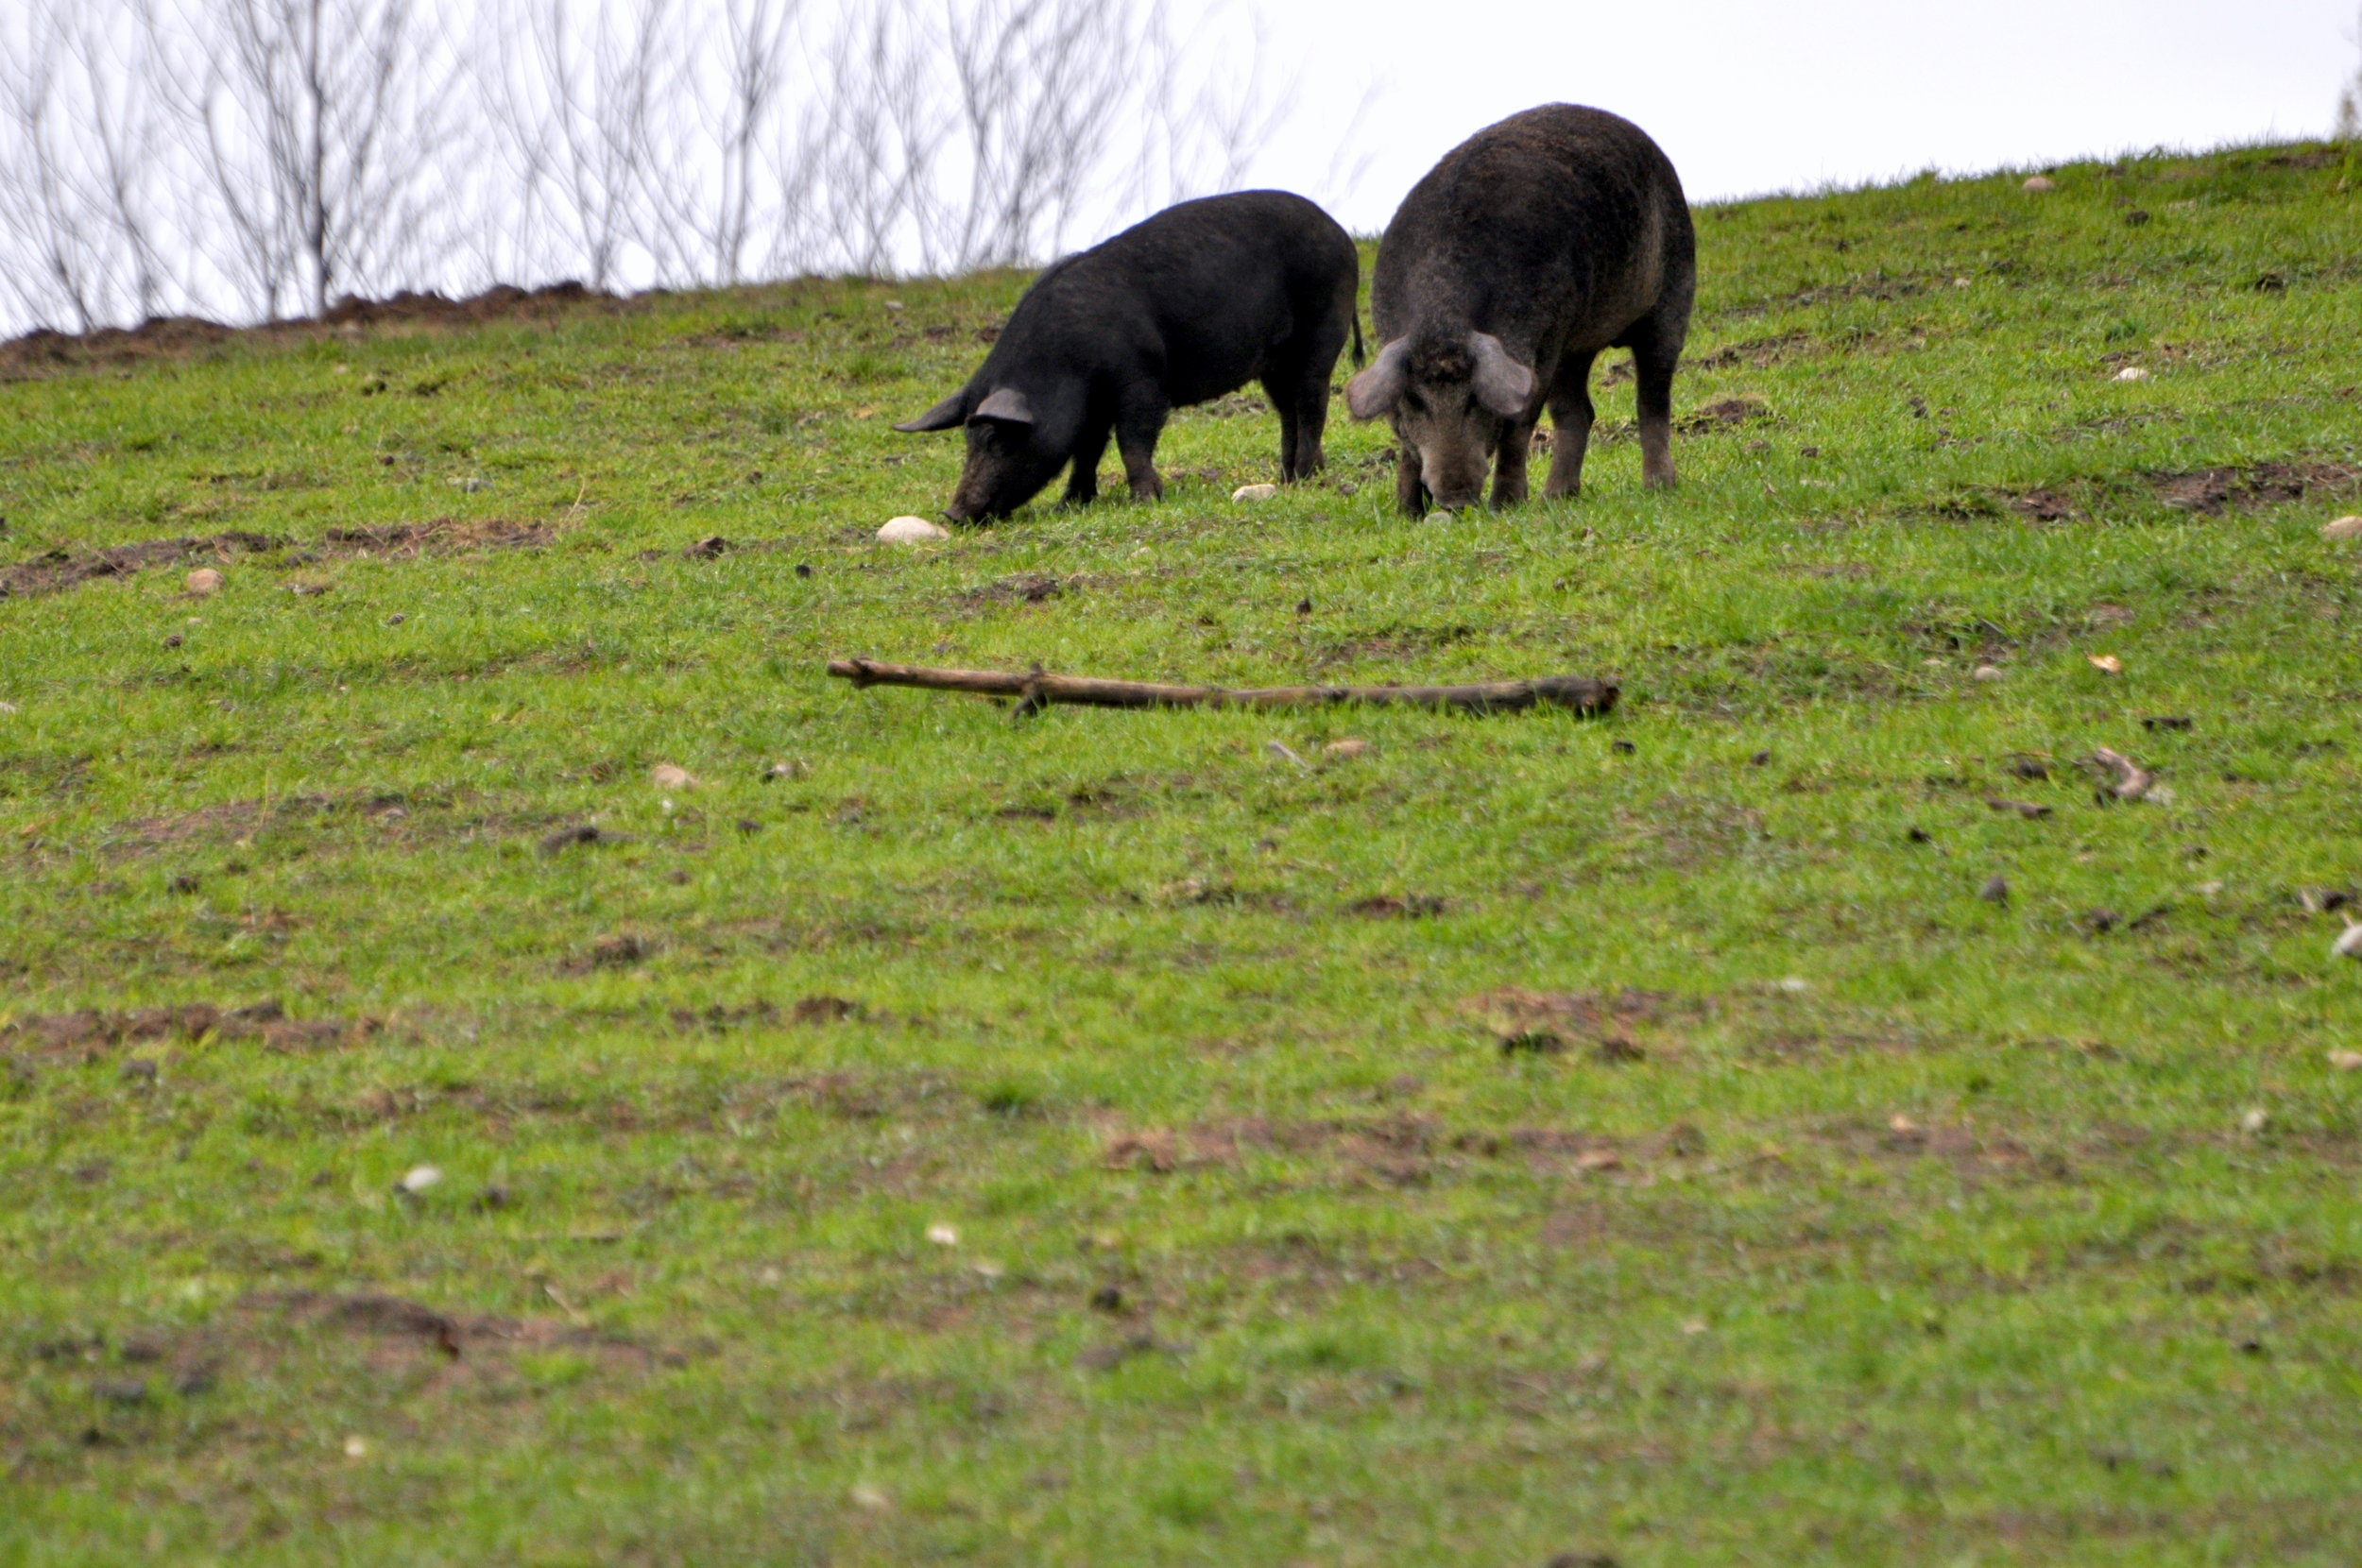 Heritage pigs on pasture.